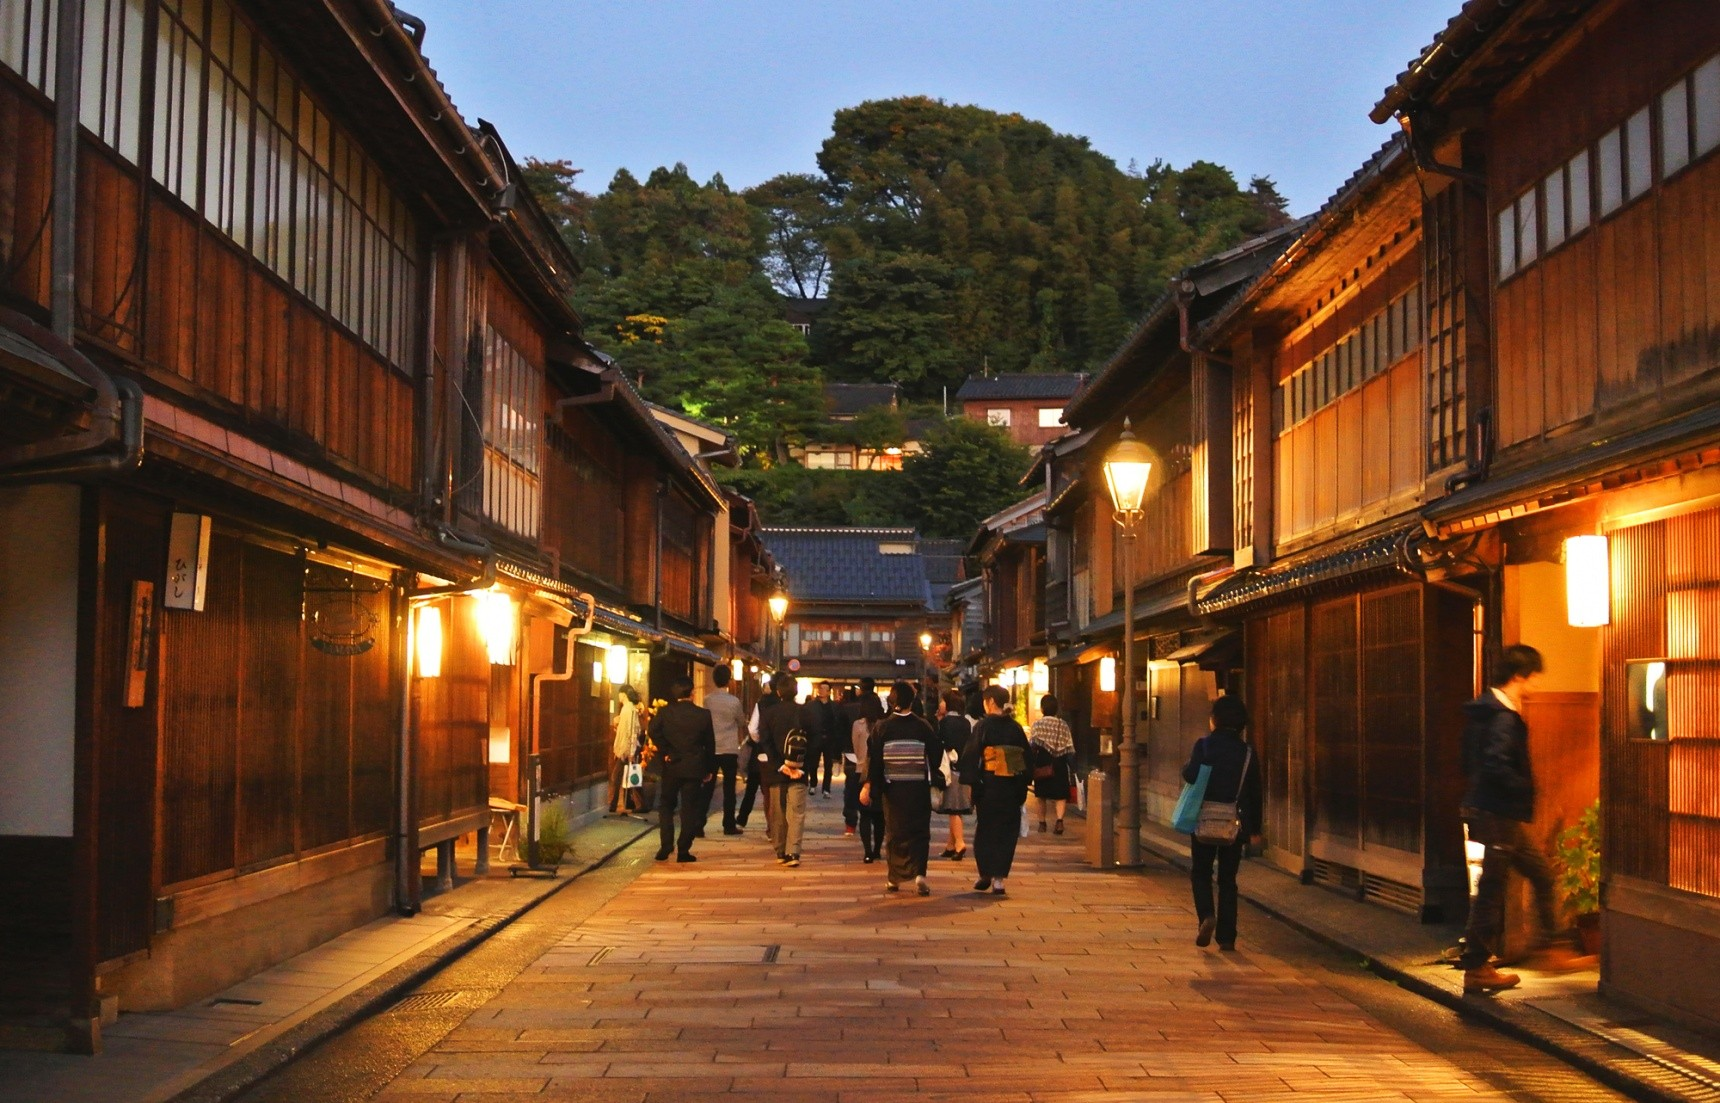 How to get around in Kanazawa